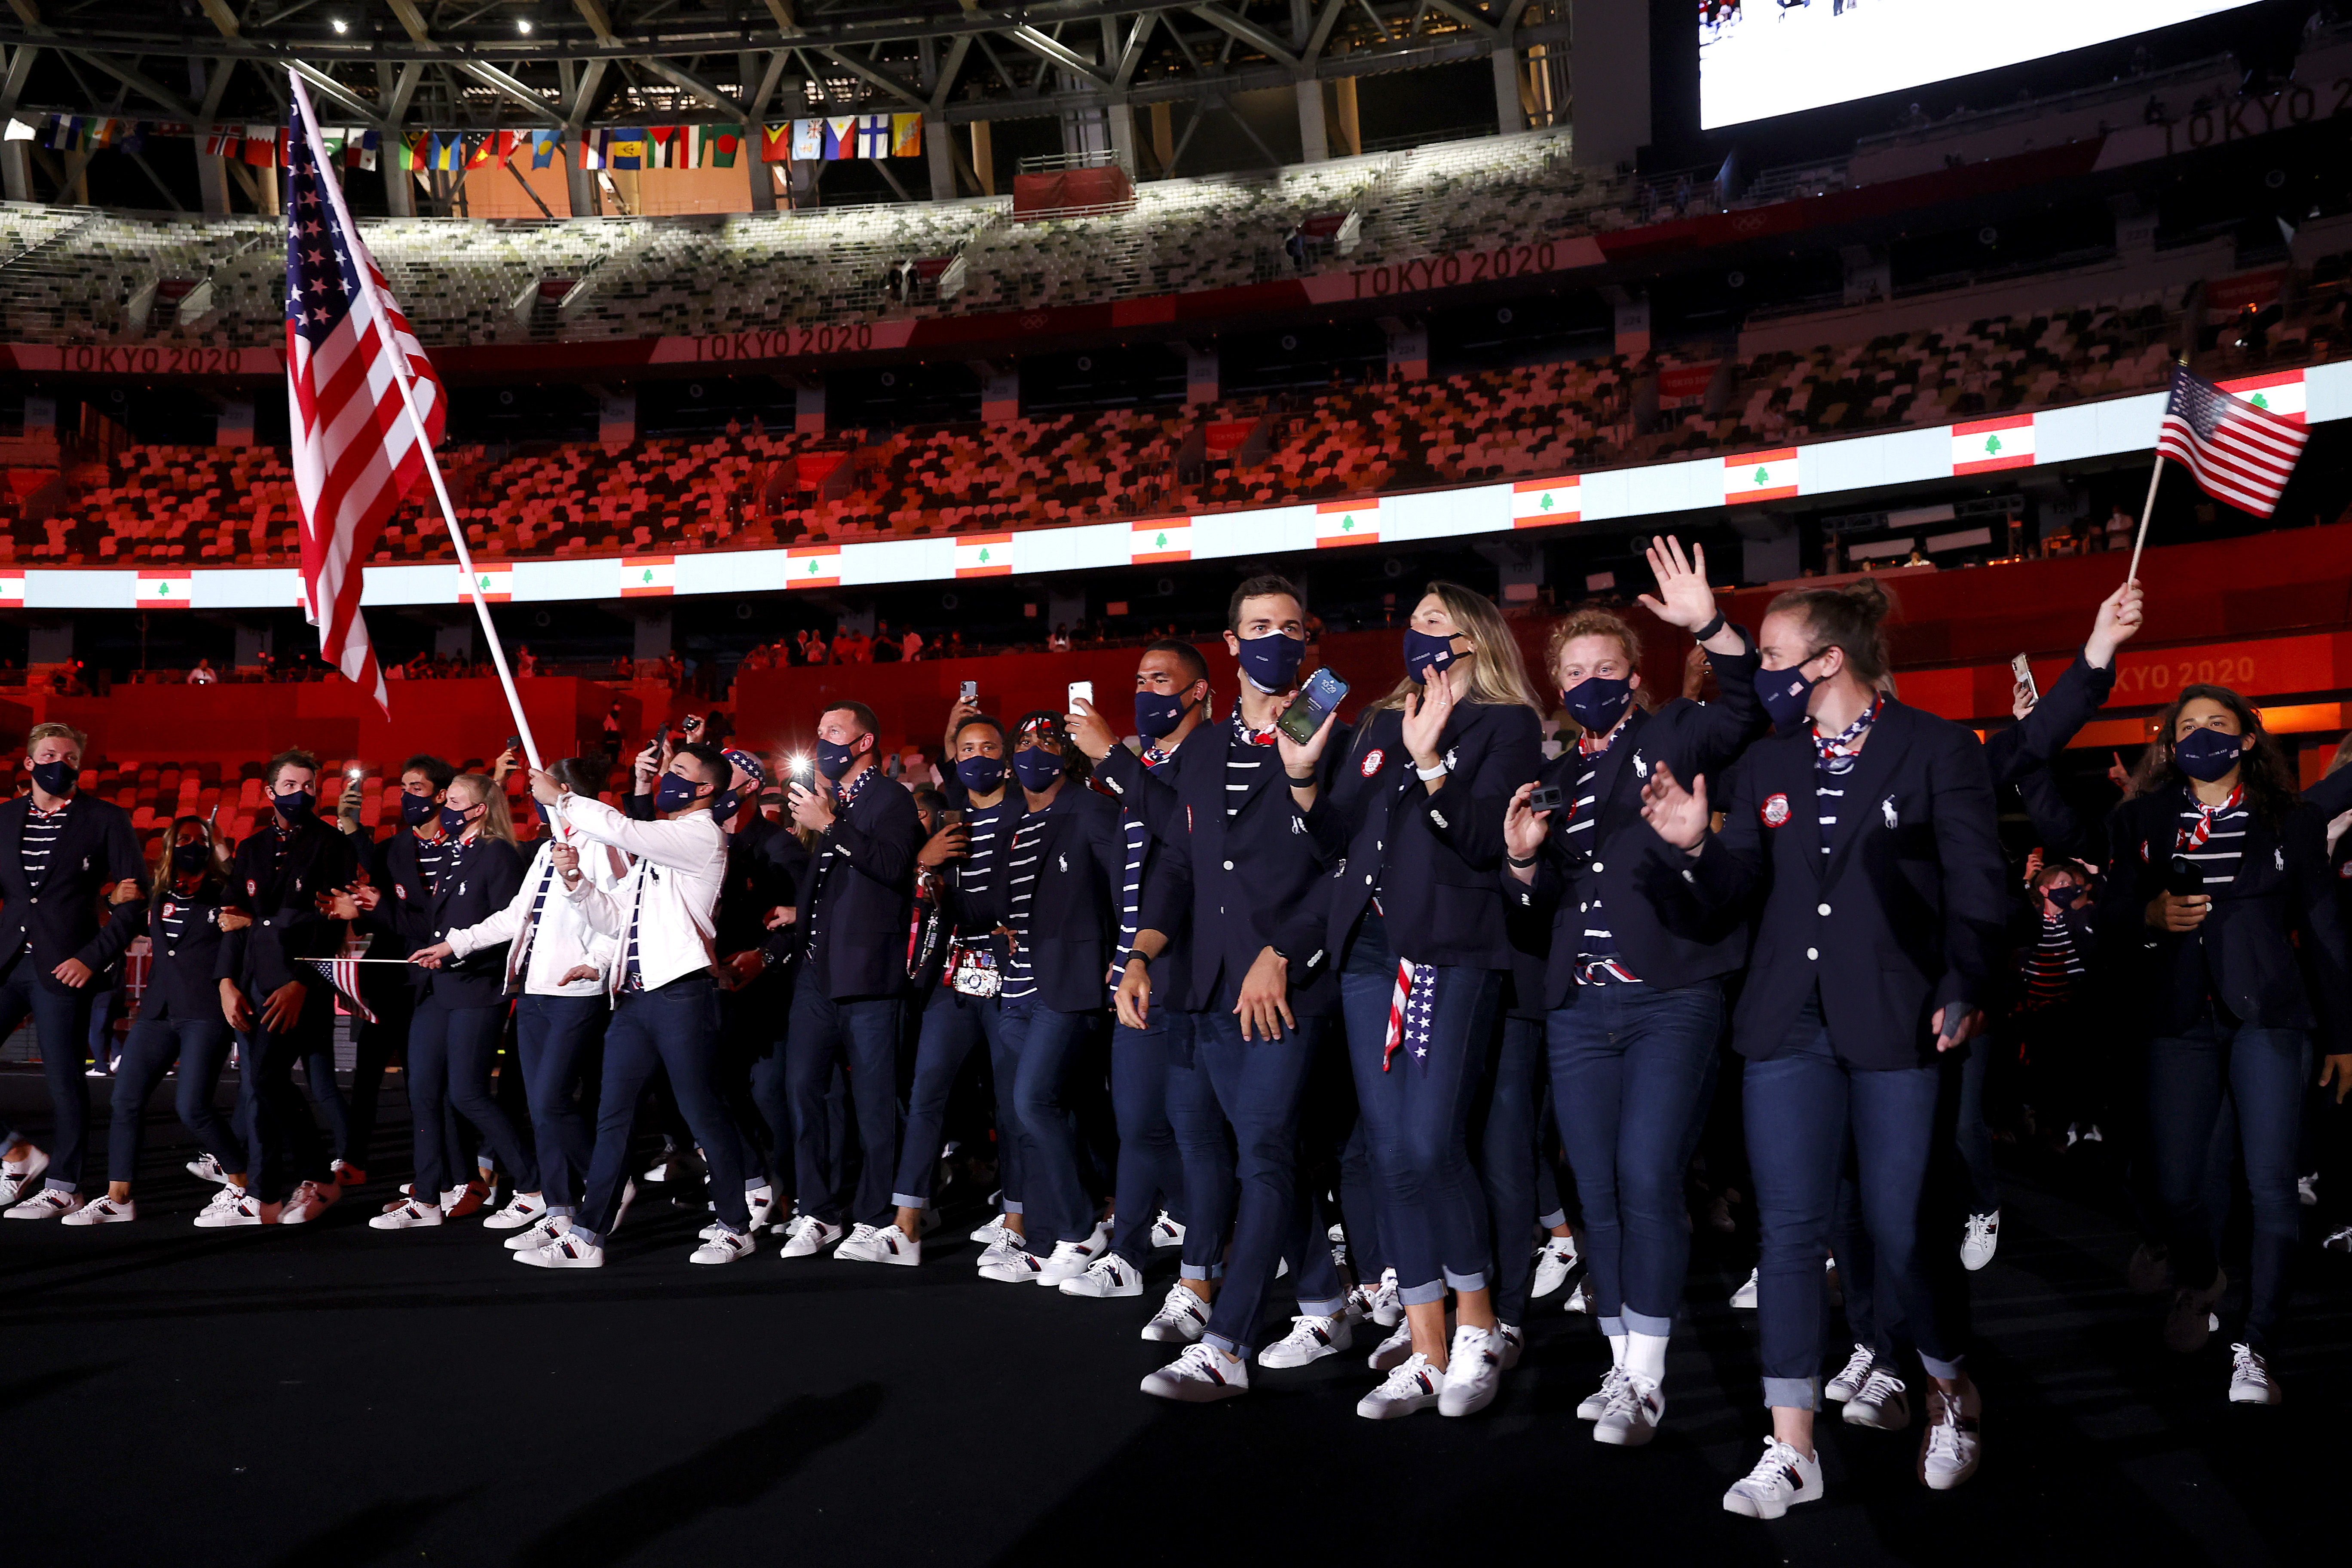 TOKYO, JAPAN - JULY 23: Flag bearers Sue Bird and Eddy Alvares of Team United States lead their team out during the Opening Ceremony of the Tokyo 2020 Olympic Games at Olympic Stadium on July 23, 2021 in Tokyo, Japan. (Photo by Jamie Squire/Getty Images)